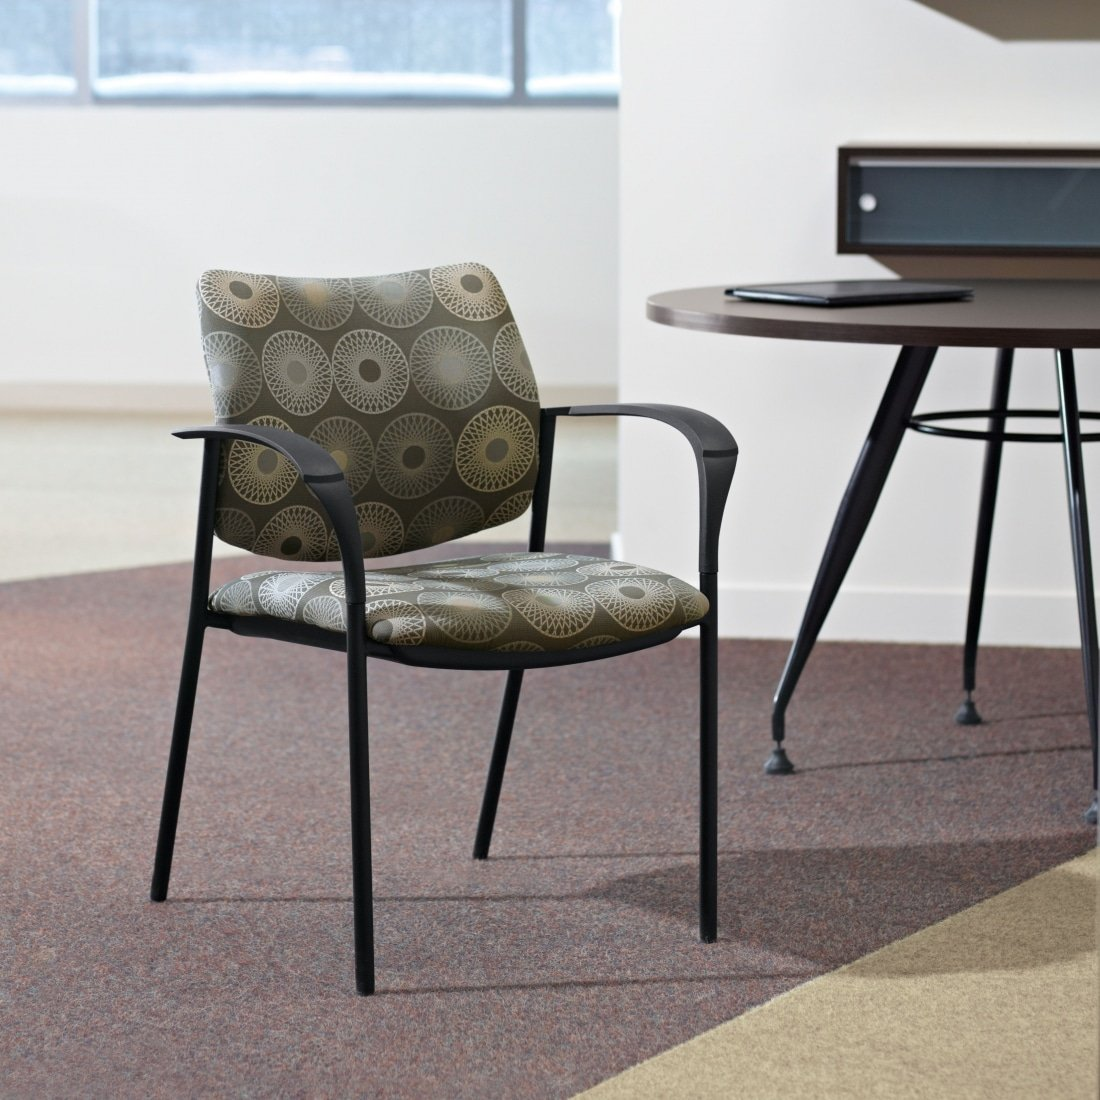 Sidero Multi-Purpose Guest Chair with arms and custom upholstered fabric